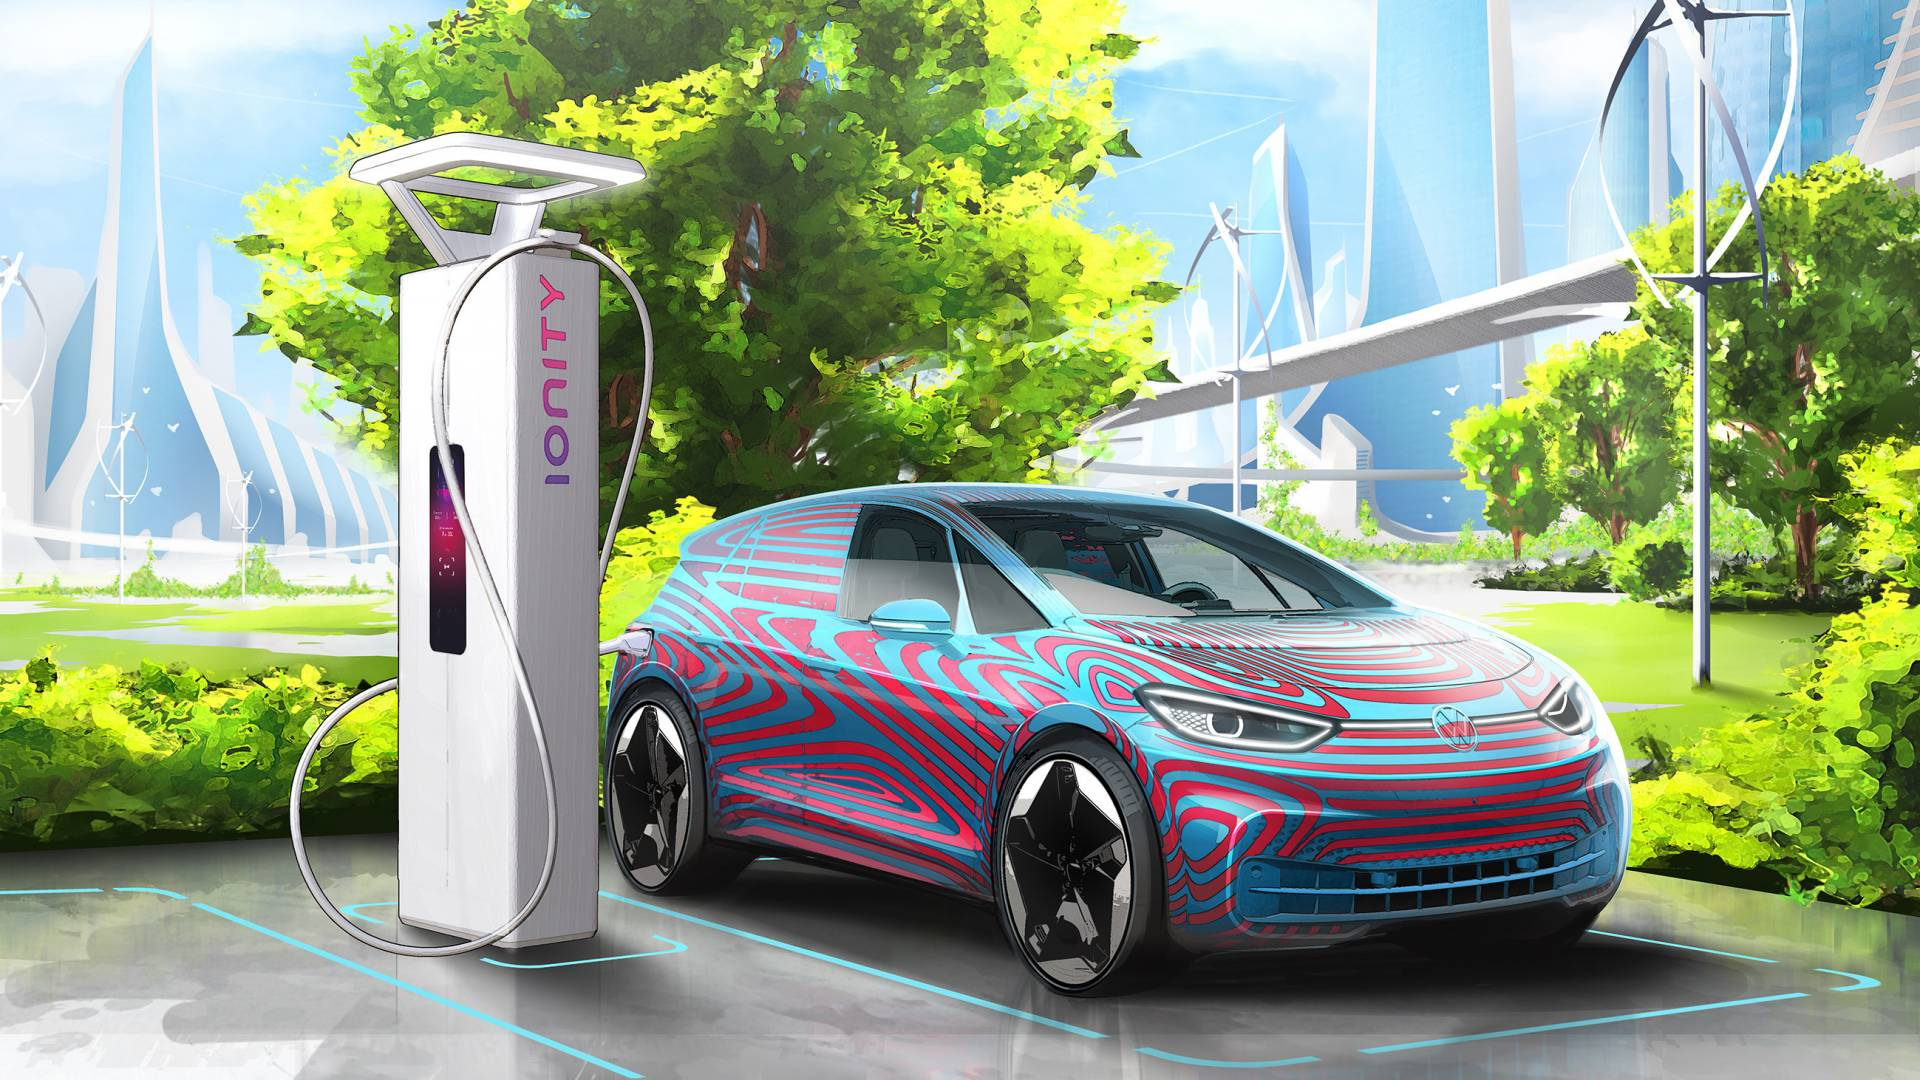 VW-europe-ev-chargers-network-1